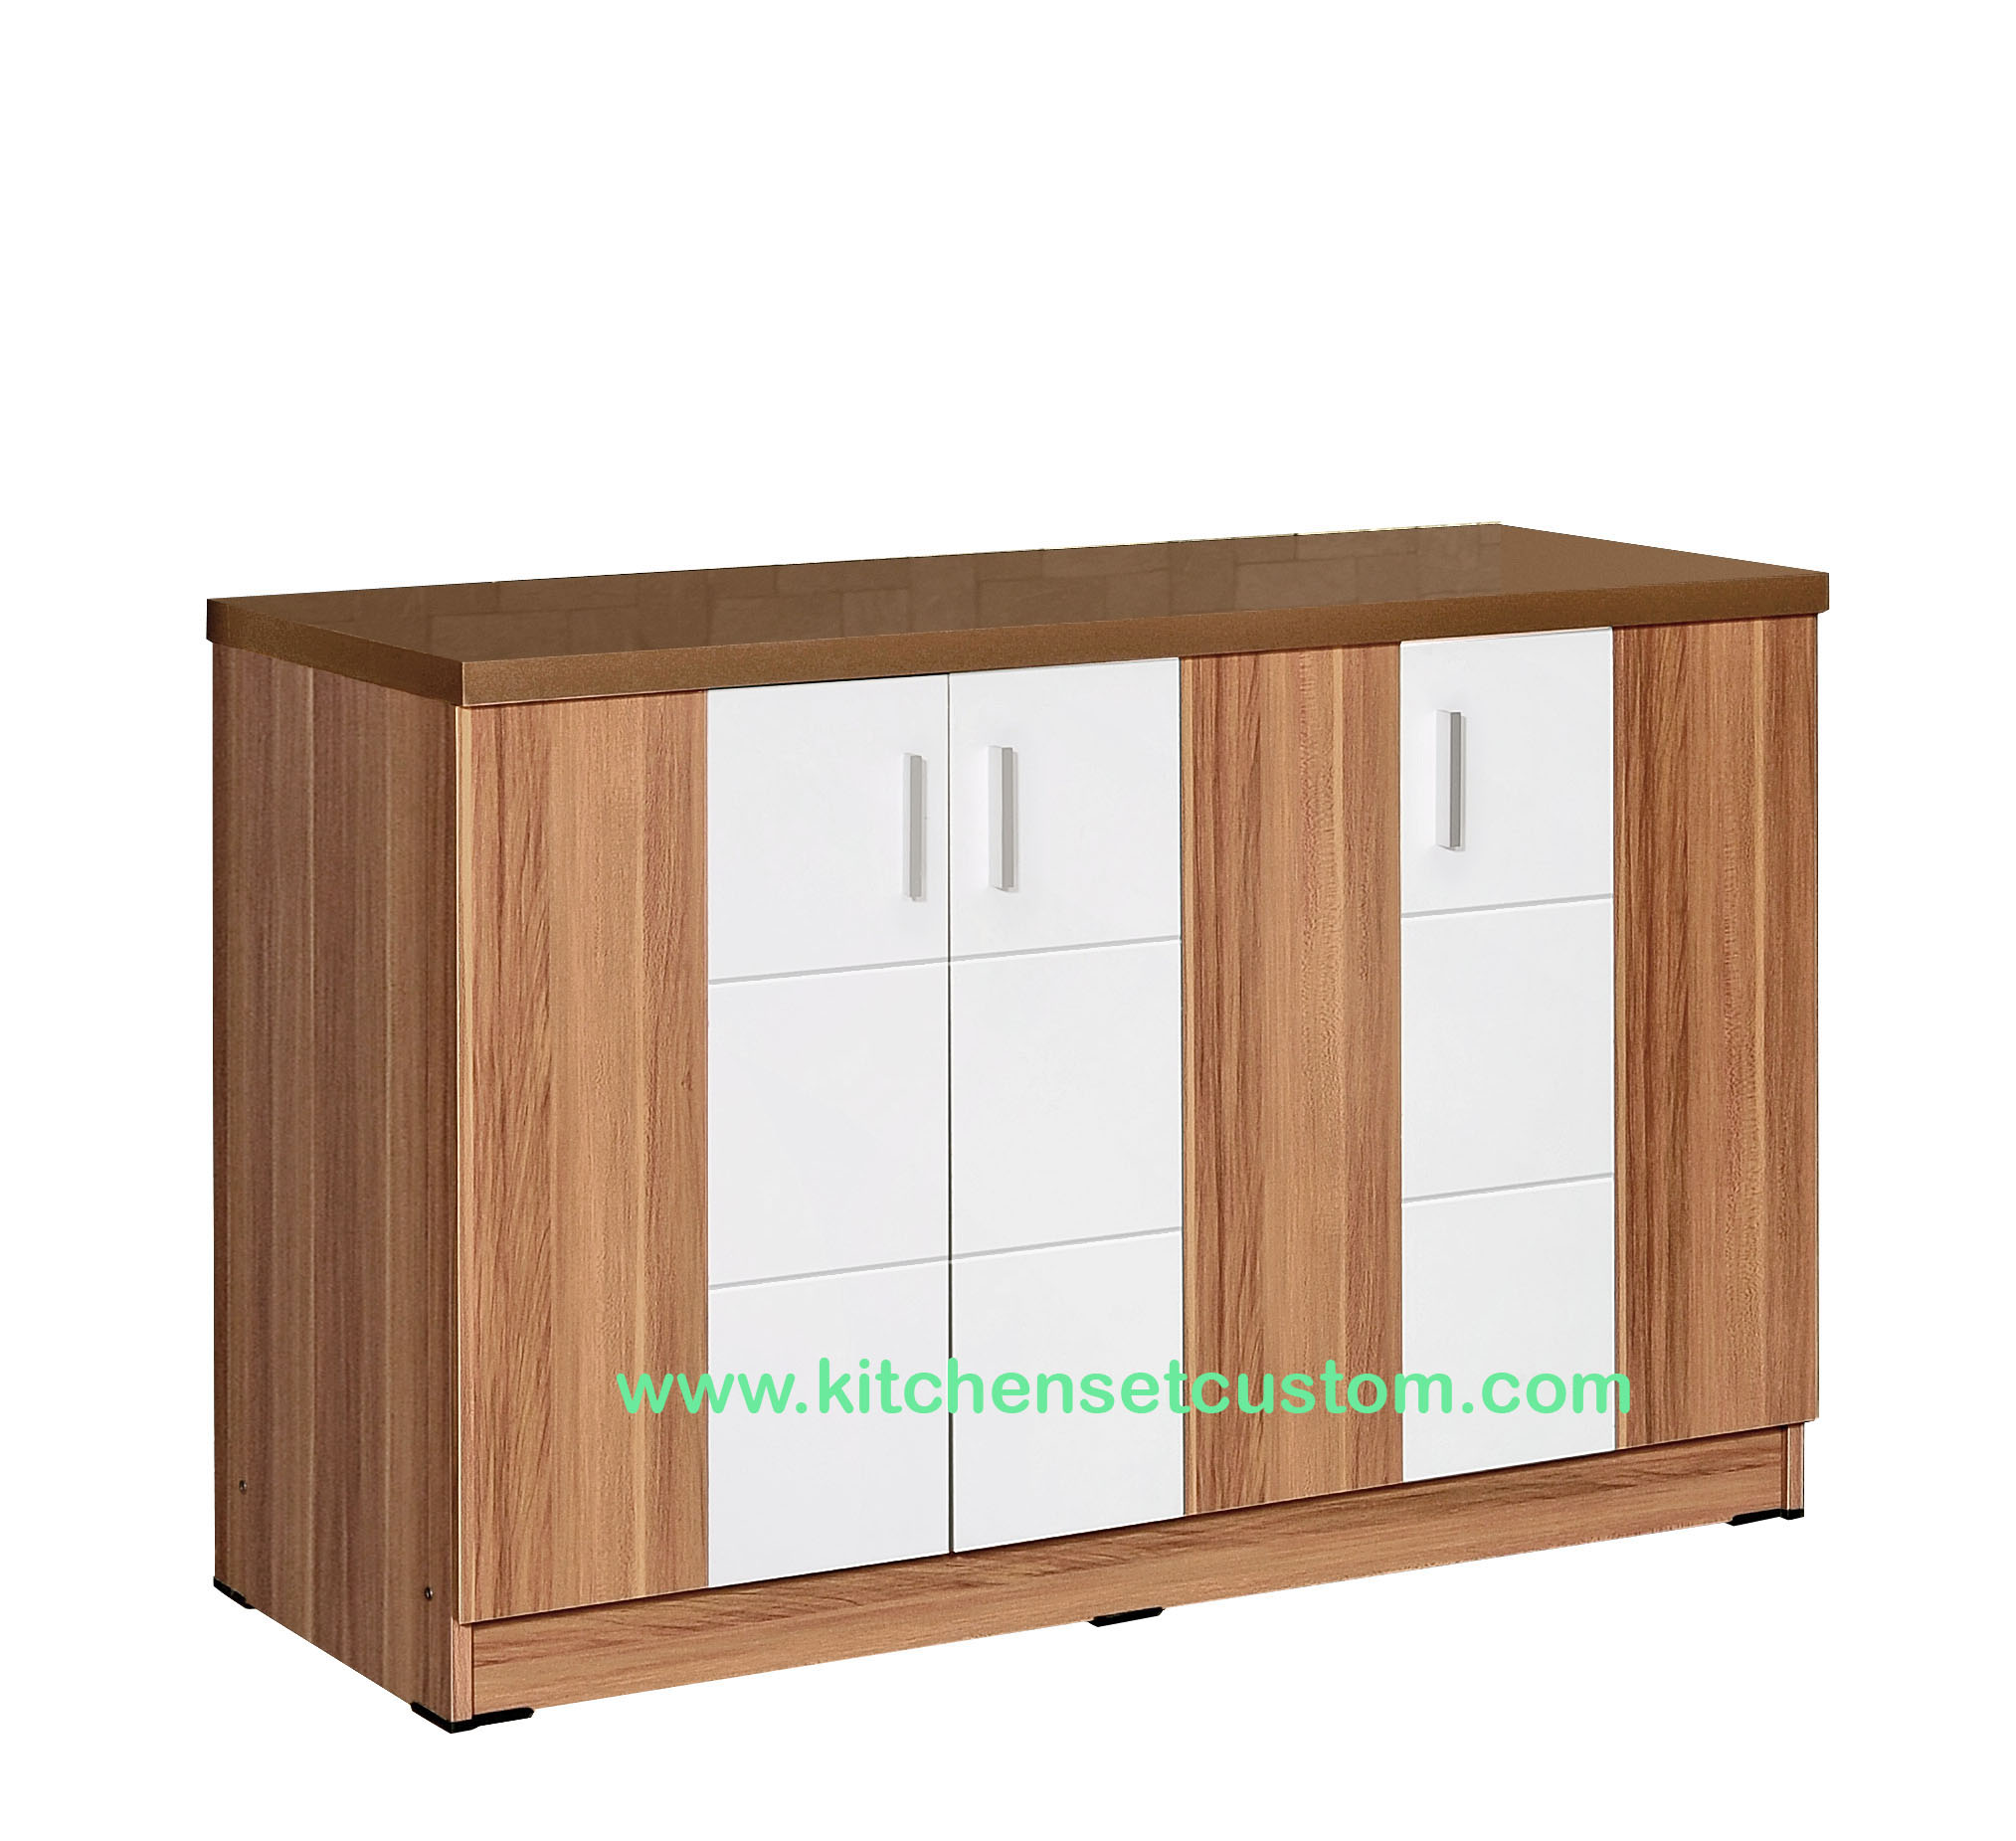 Kitchen Set 3 Pintu KSB 2743 Graver Furniture